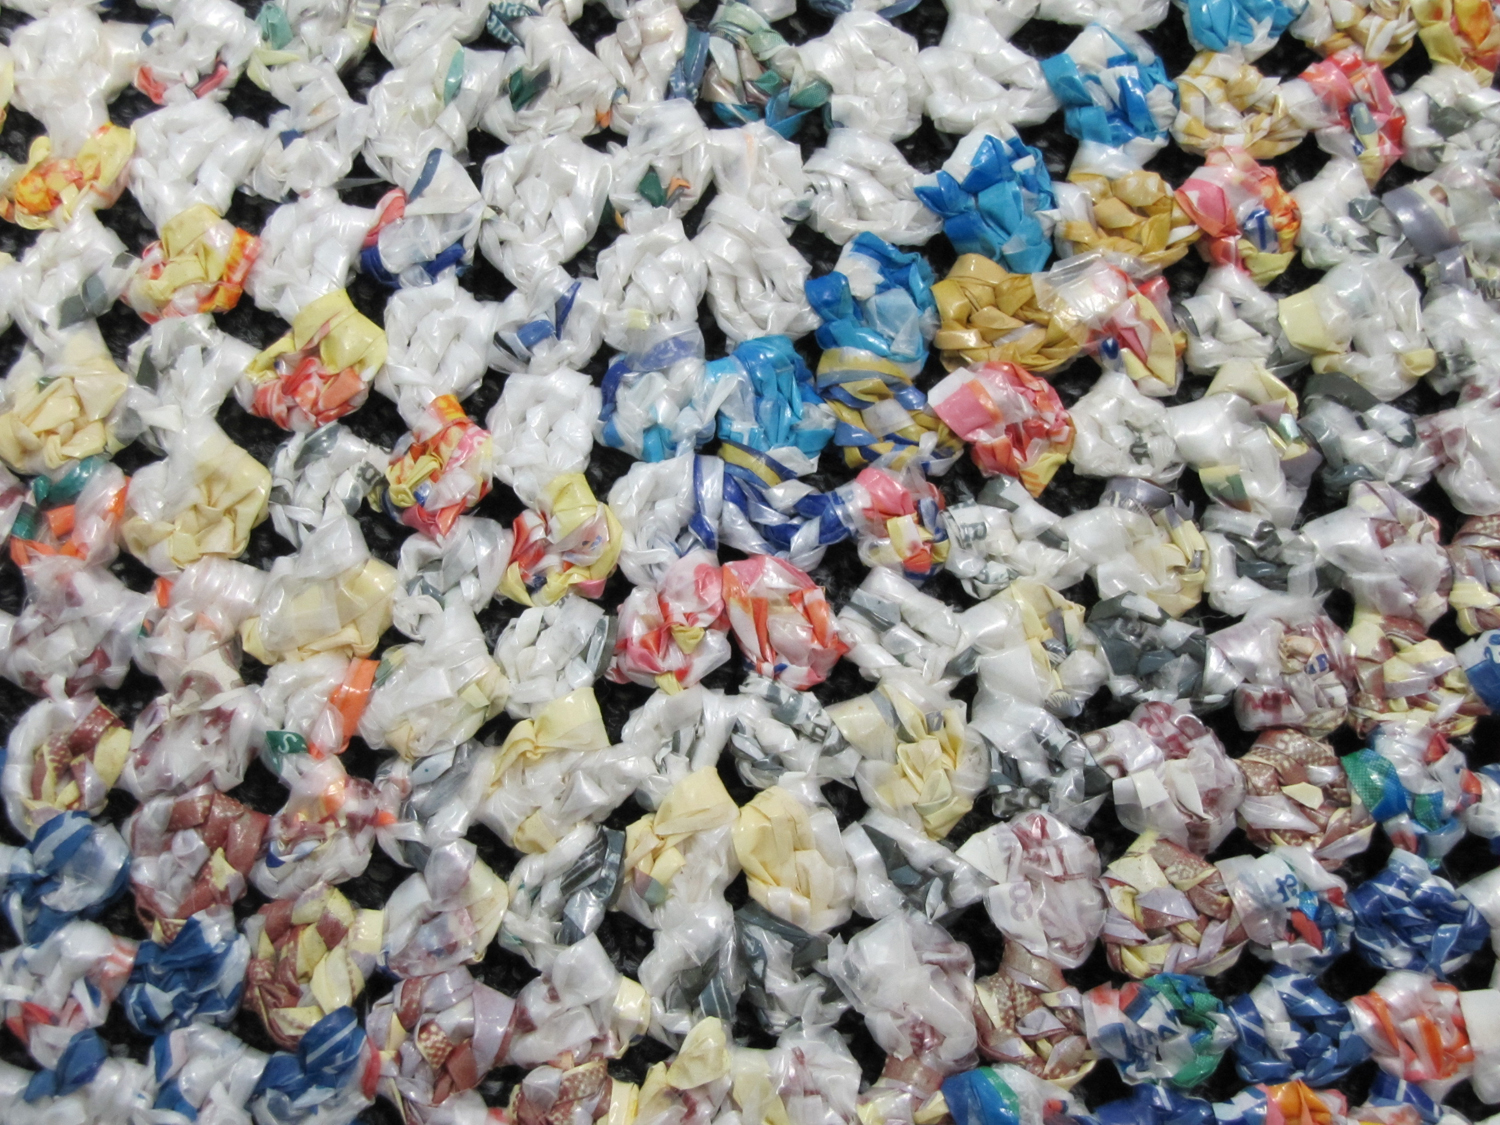 Photographs Of Outdoor Rug Crocheted From Plastic Bags